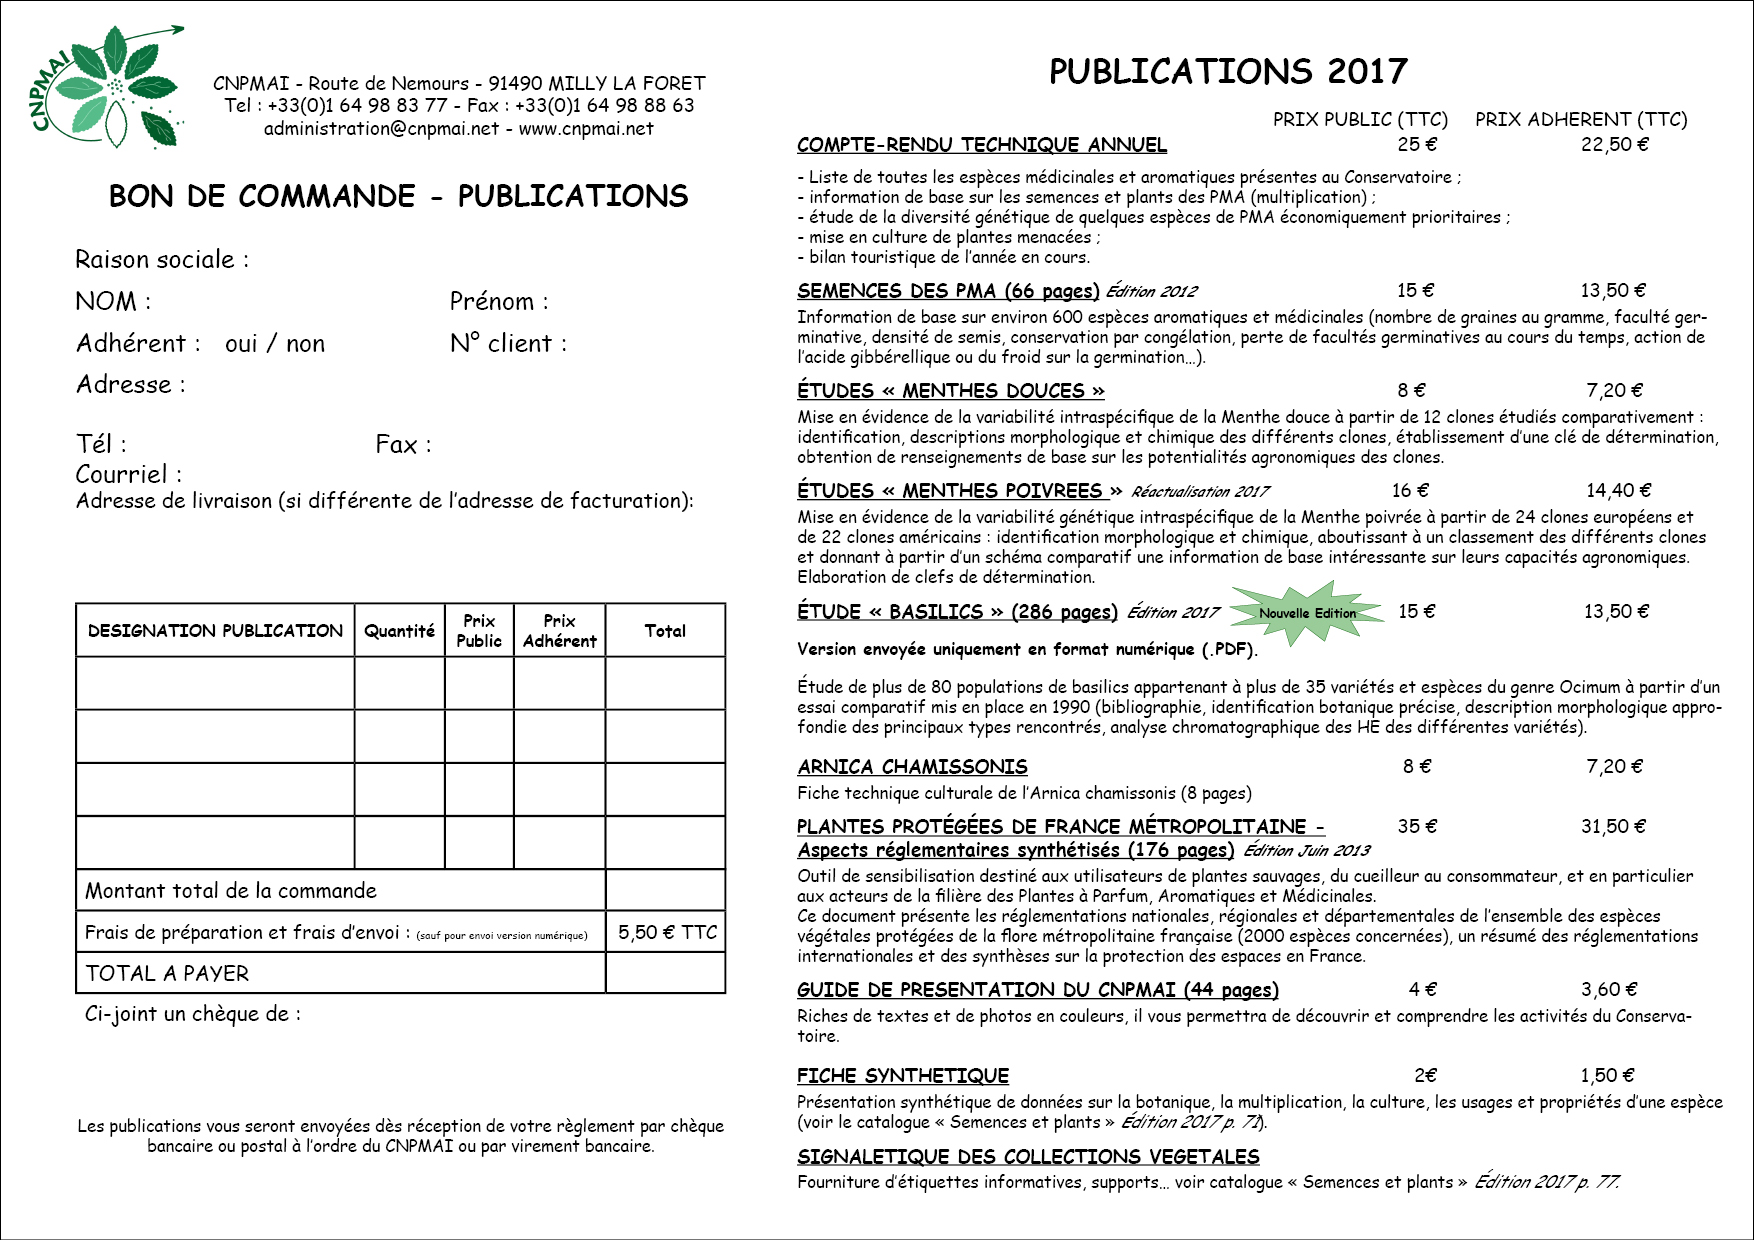 Liste et BDC Publications 2017